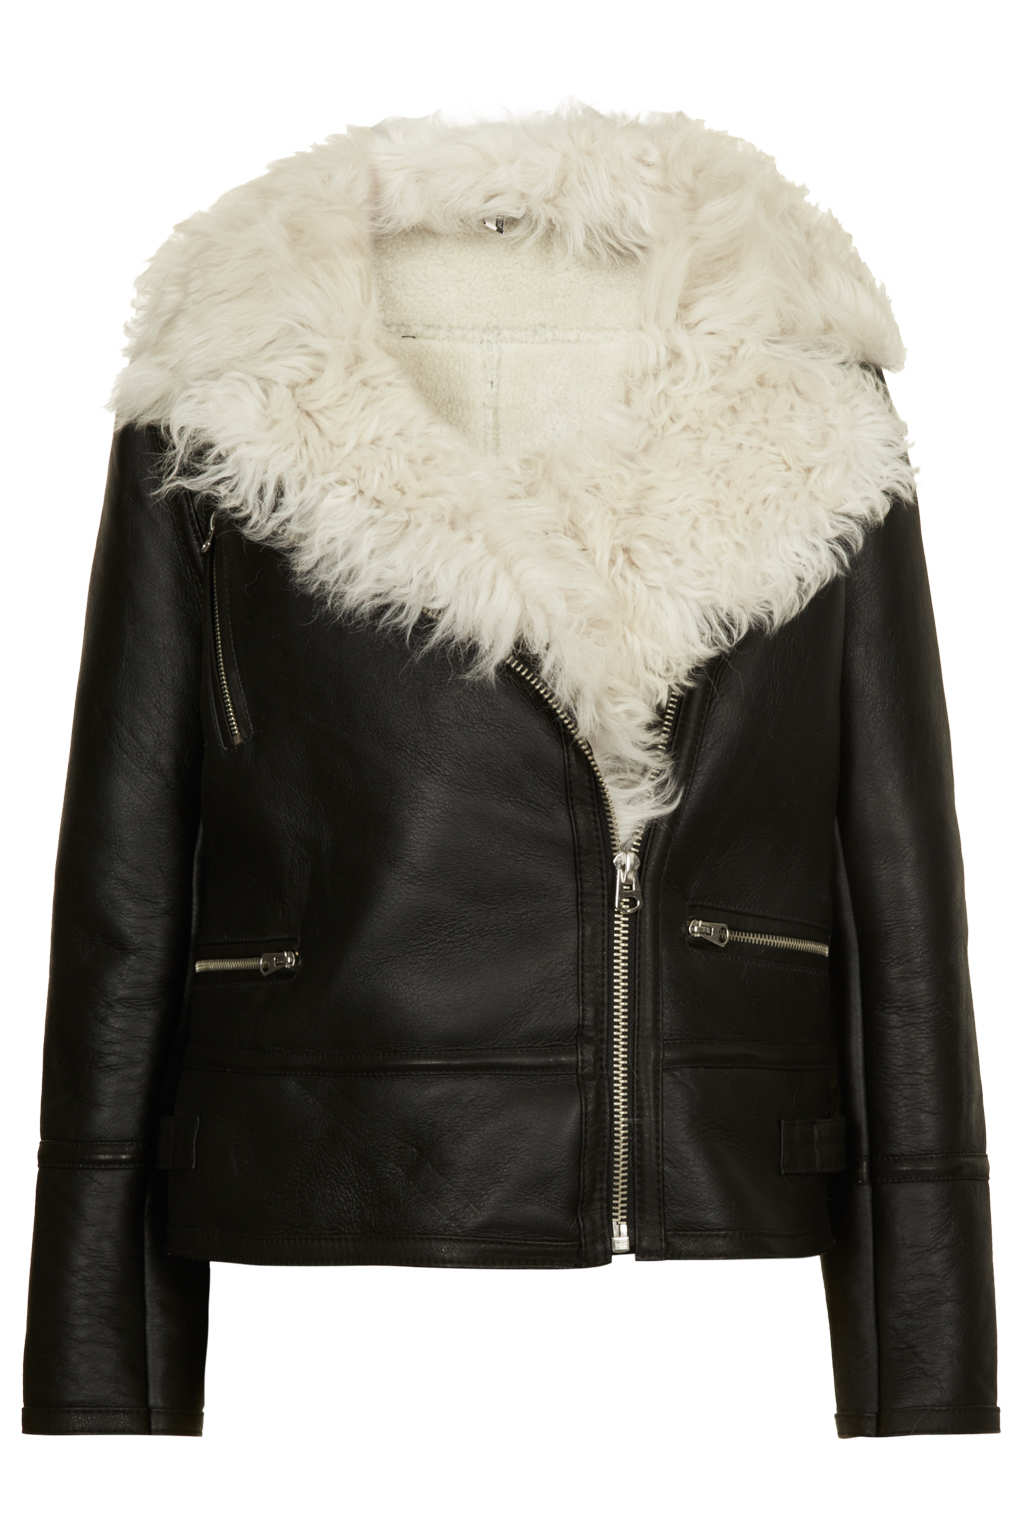 Topshop Sheepskin Coat | Down Coat